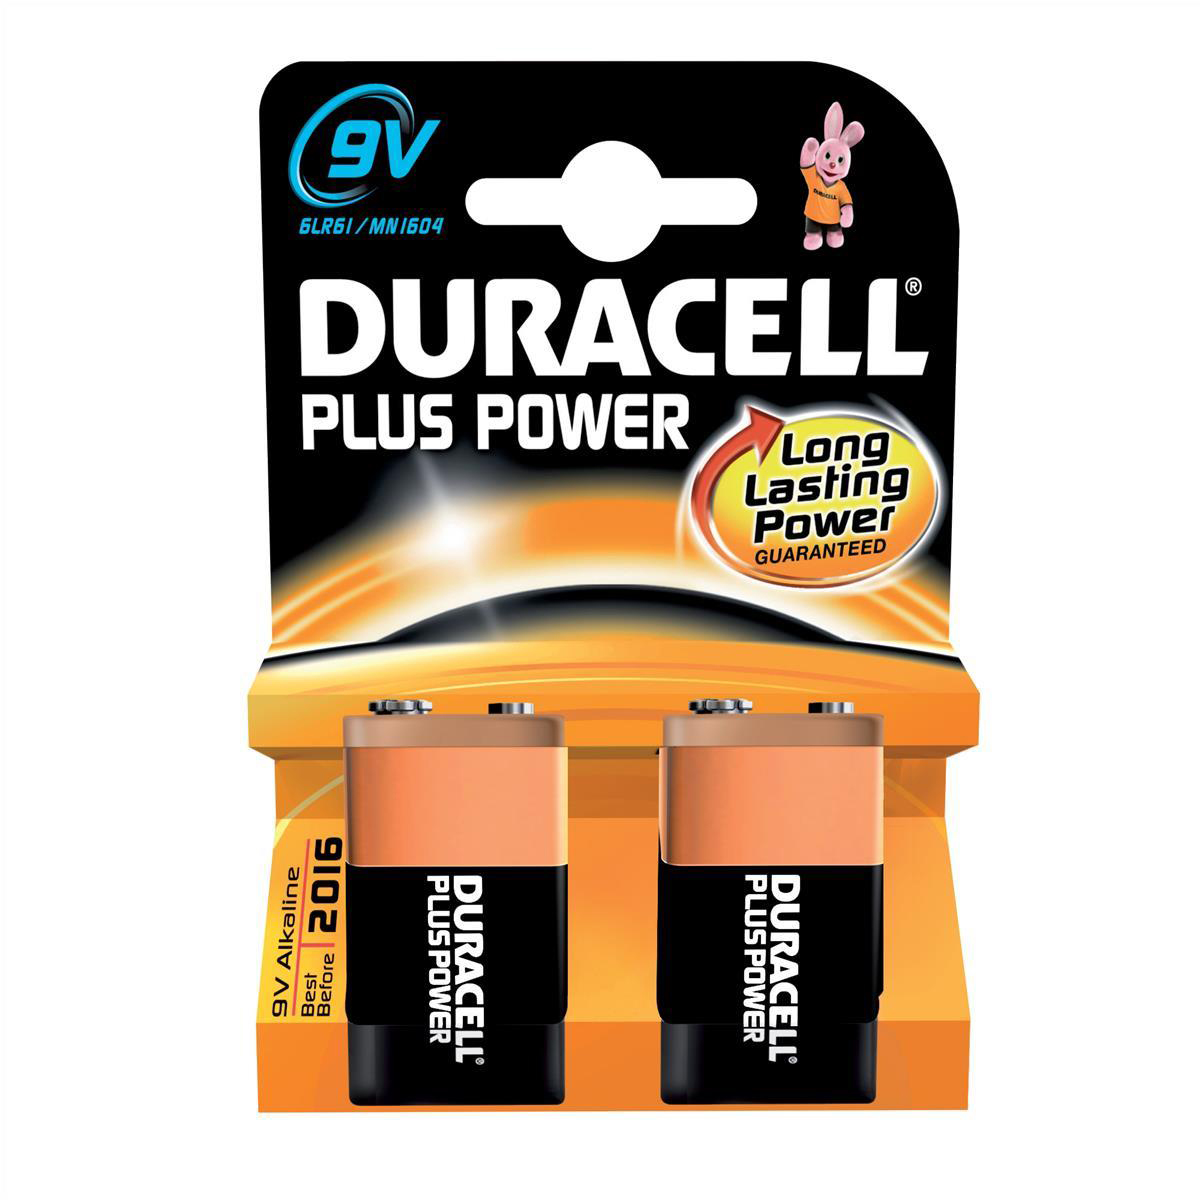 Duracell Plus Power MN1604 Battery Alkaline 9V Ref 81275459 Pack 2